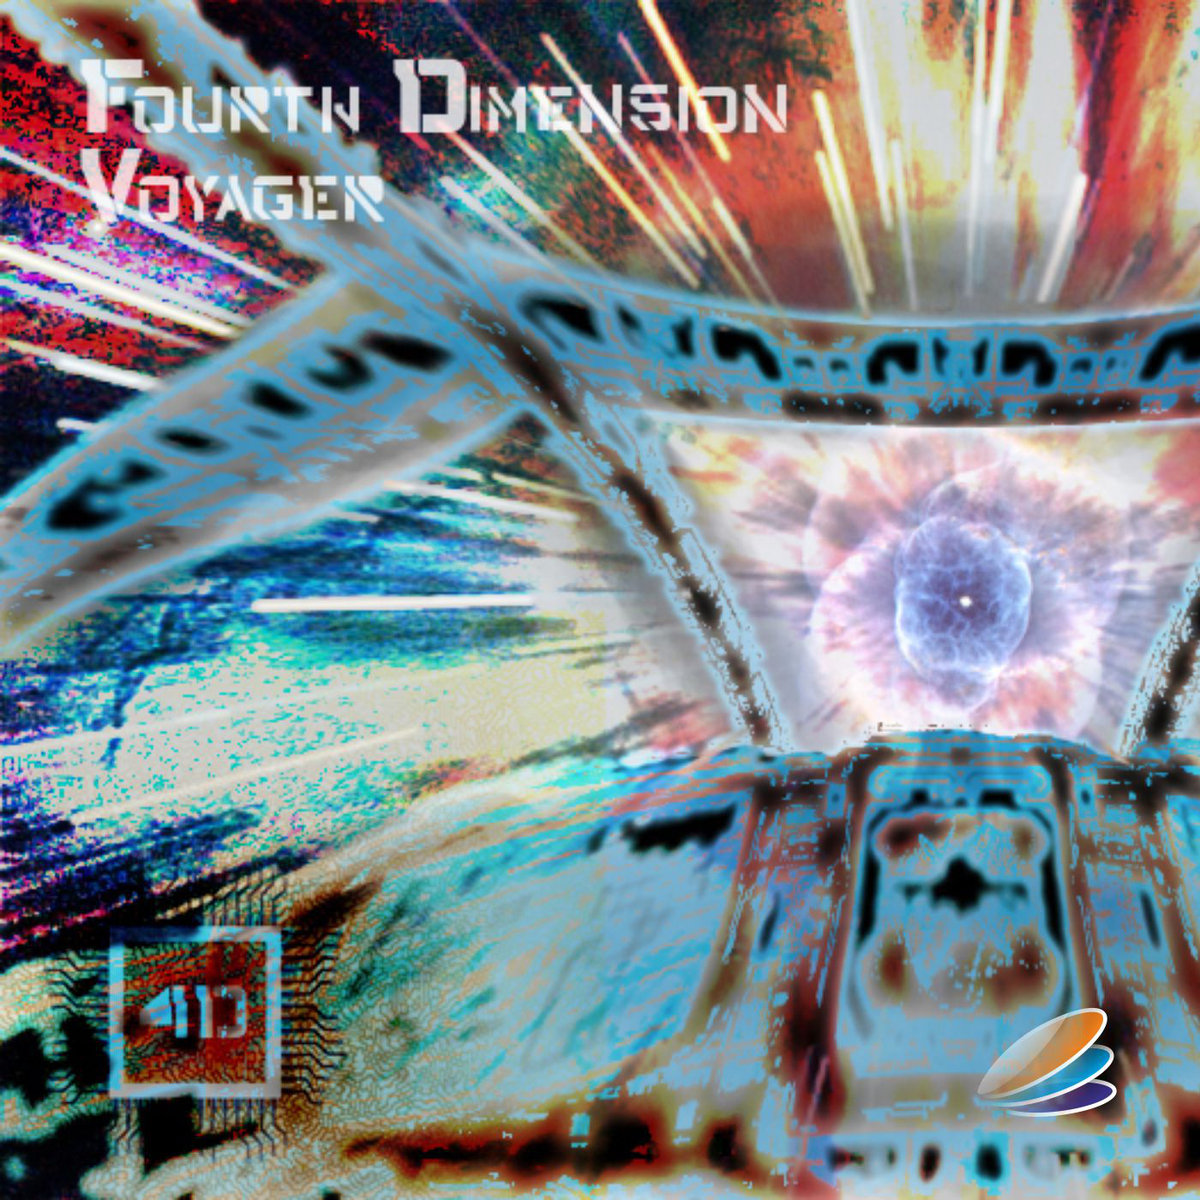 Fourth Dimension - Voyager